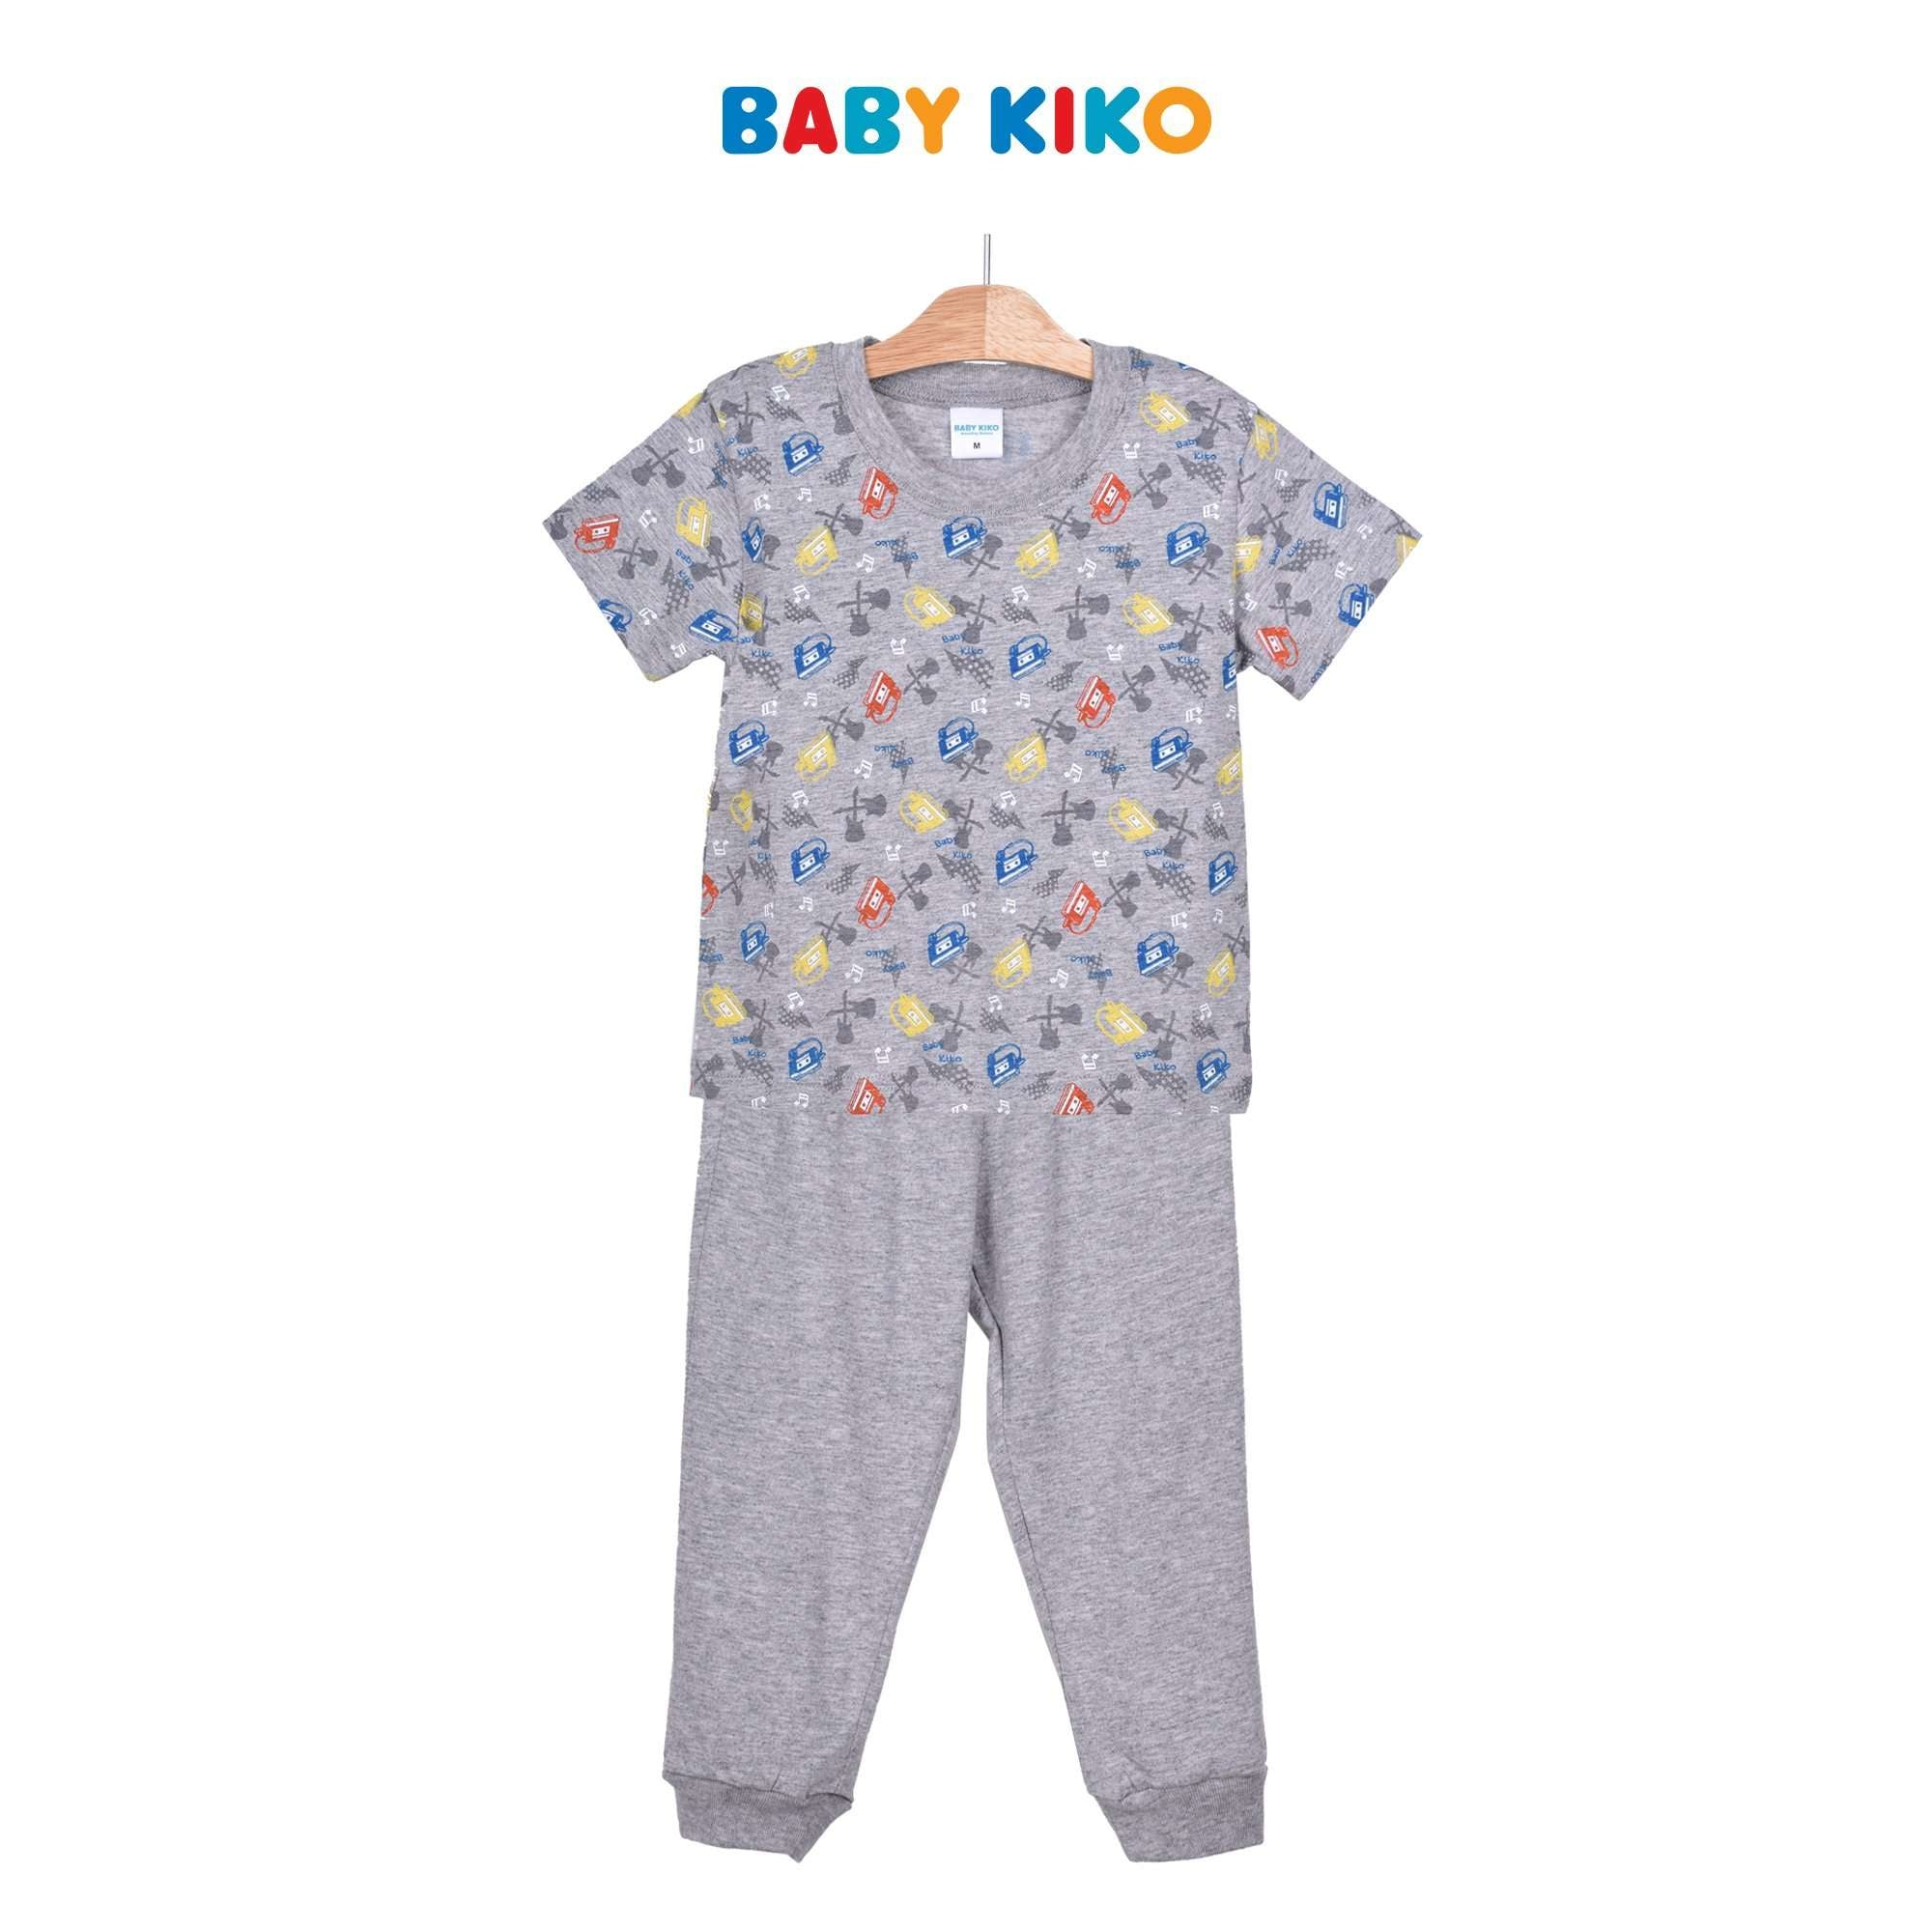 Baby KIKO Toddler Boy Short Sleeve Long Pants Suit - Light Grey 325152-421 : Buy Baby KIKO online at CMG.MY